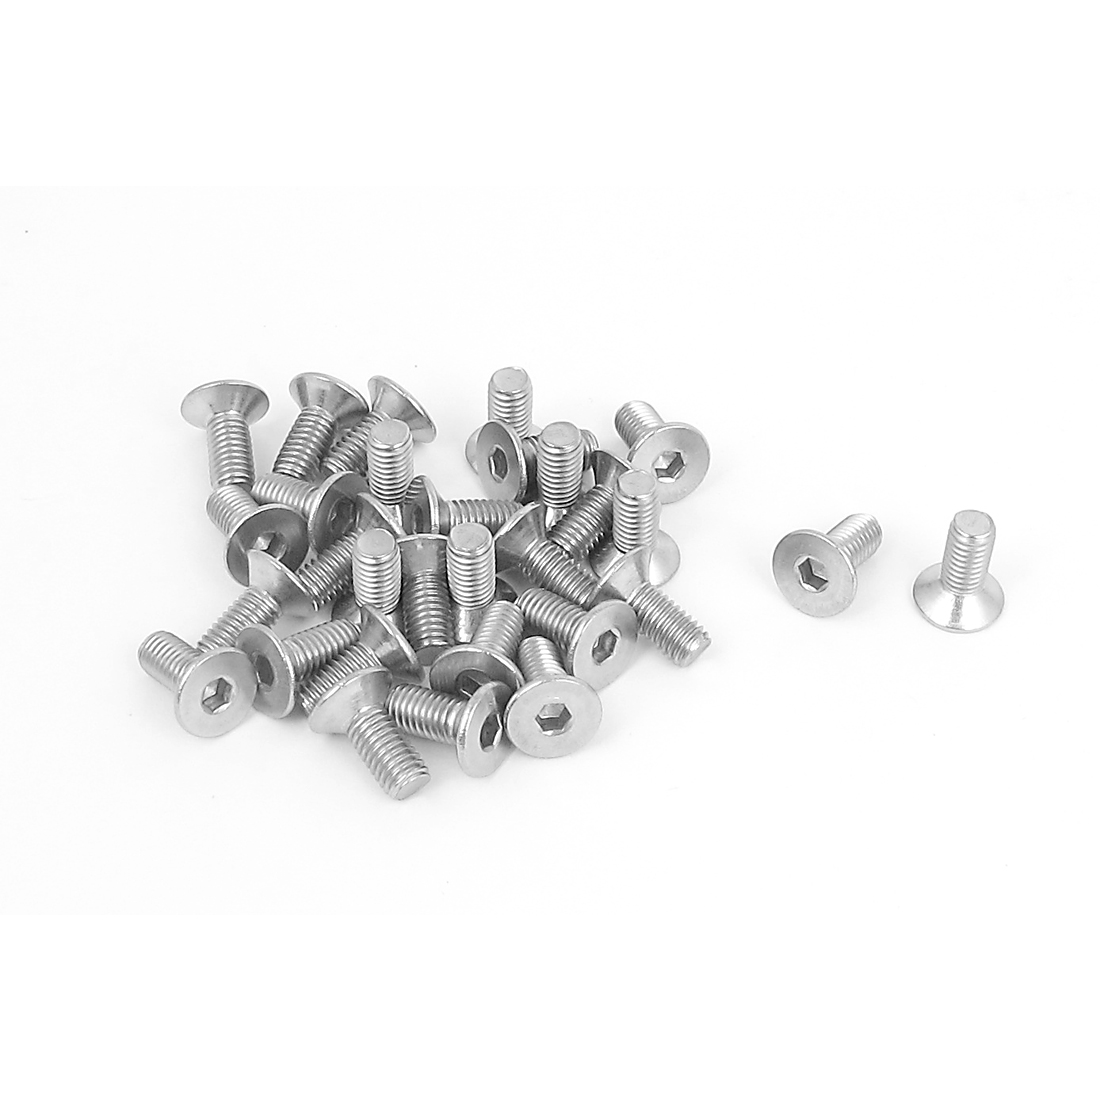 M5 x 12mm Metric 304 Stainless Steel Hex Socket Countersunk Flat Head Screw Bolts 30PCS